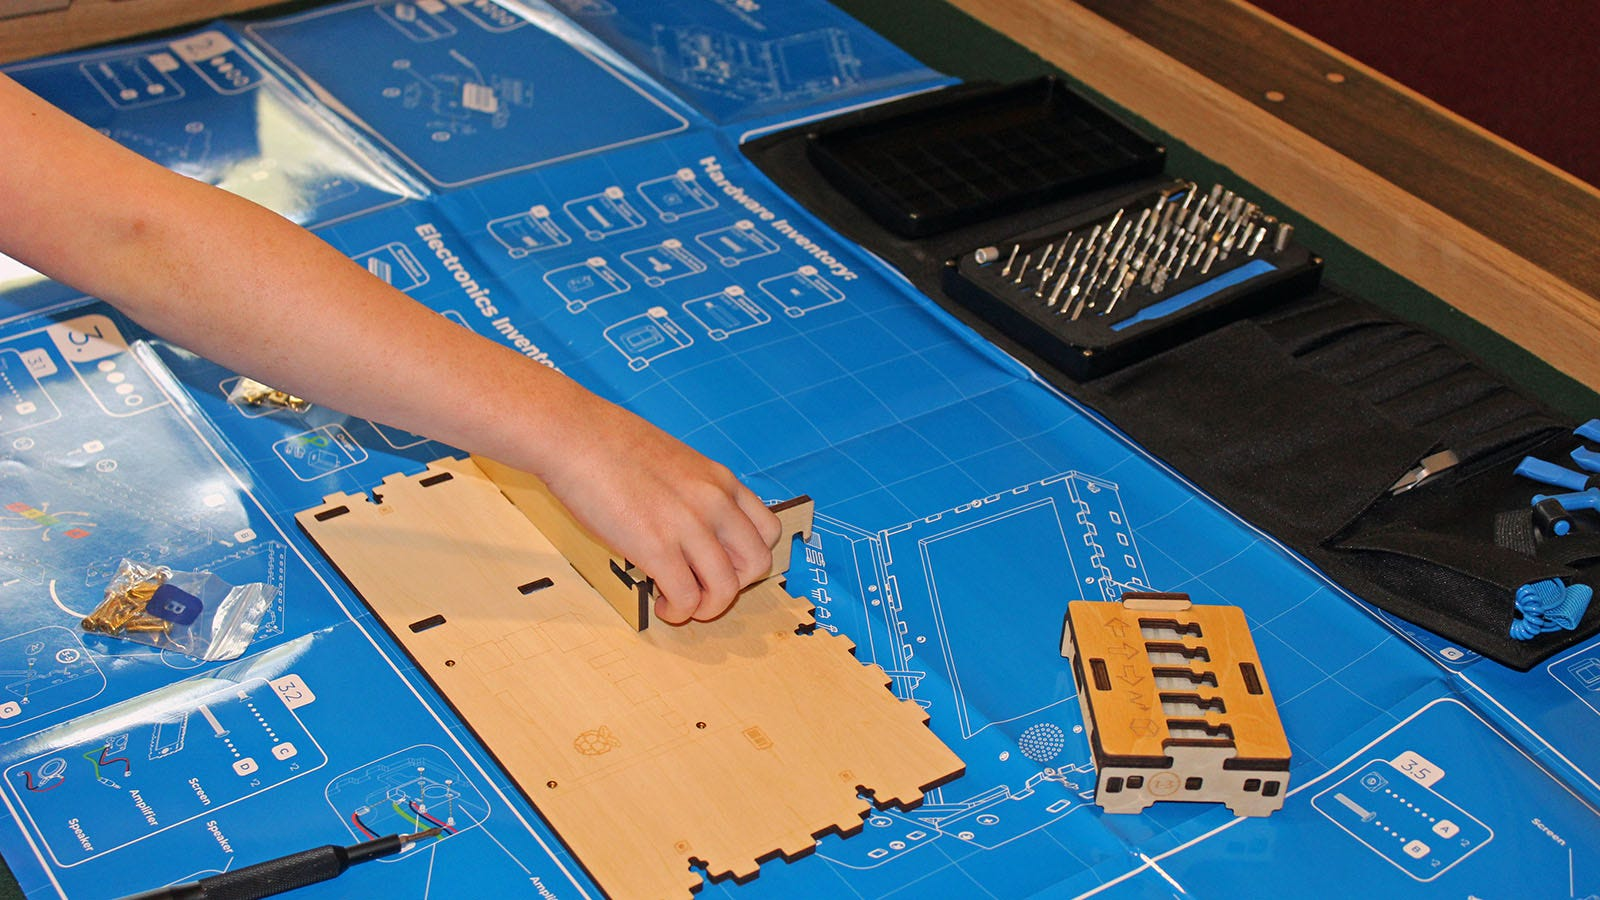 A Blueprint poster, with pieces of the Piper Kit being assemble on top of it.